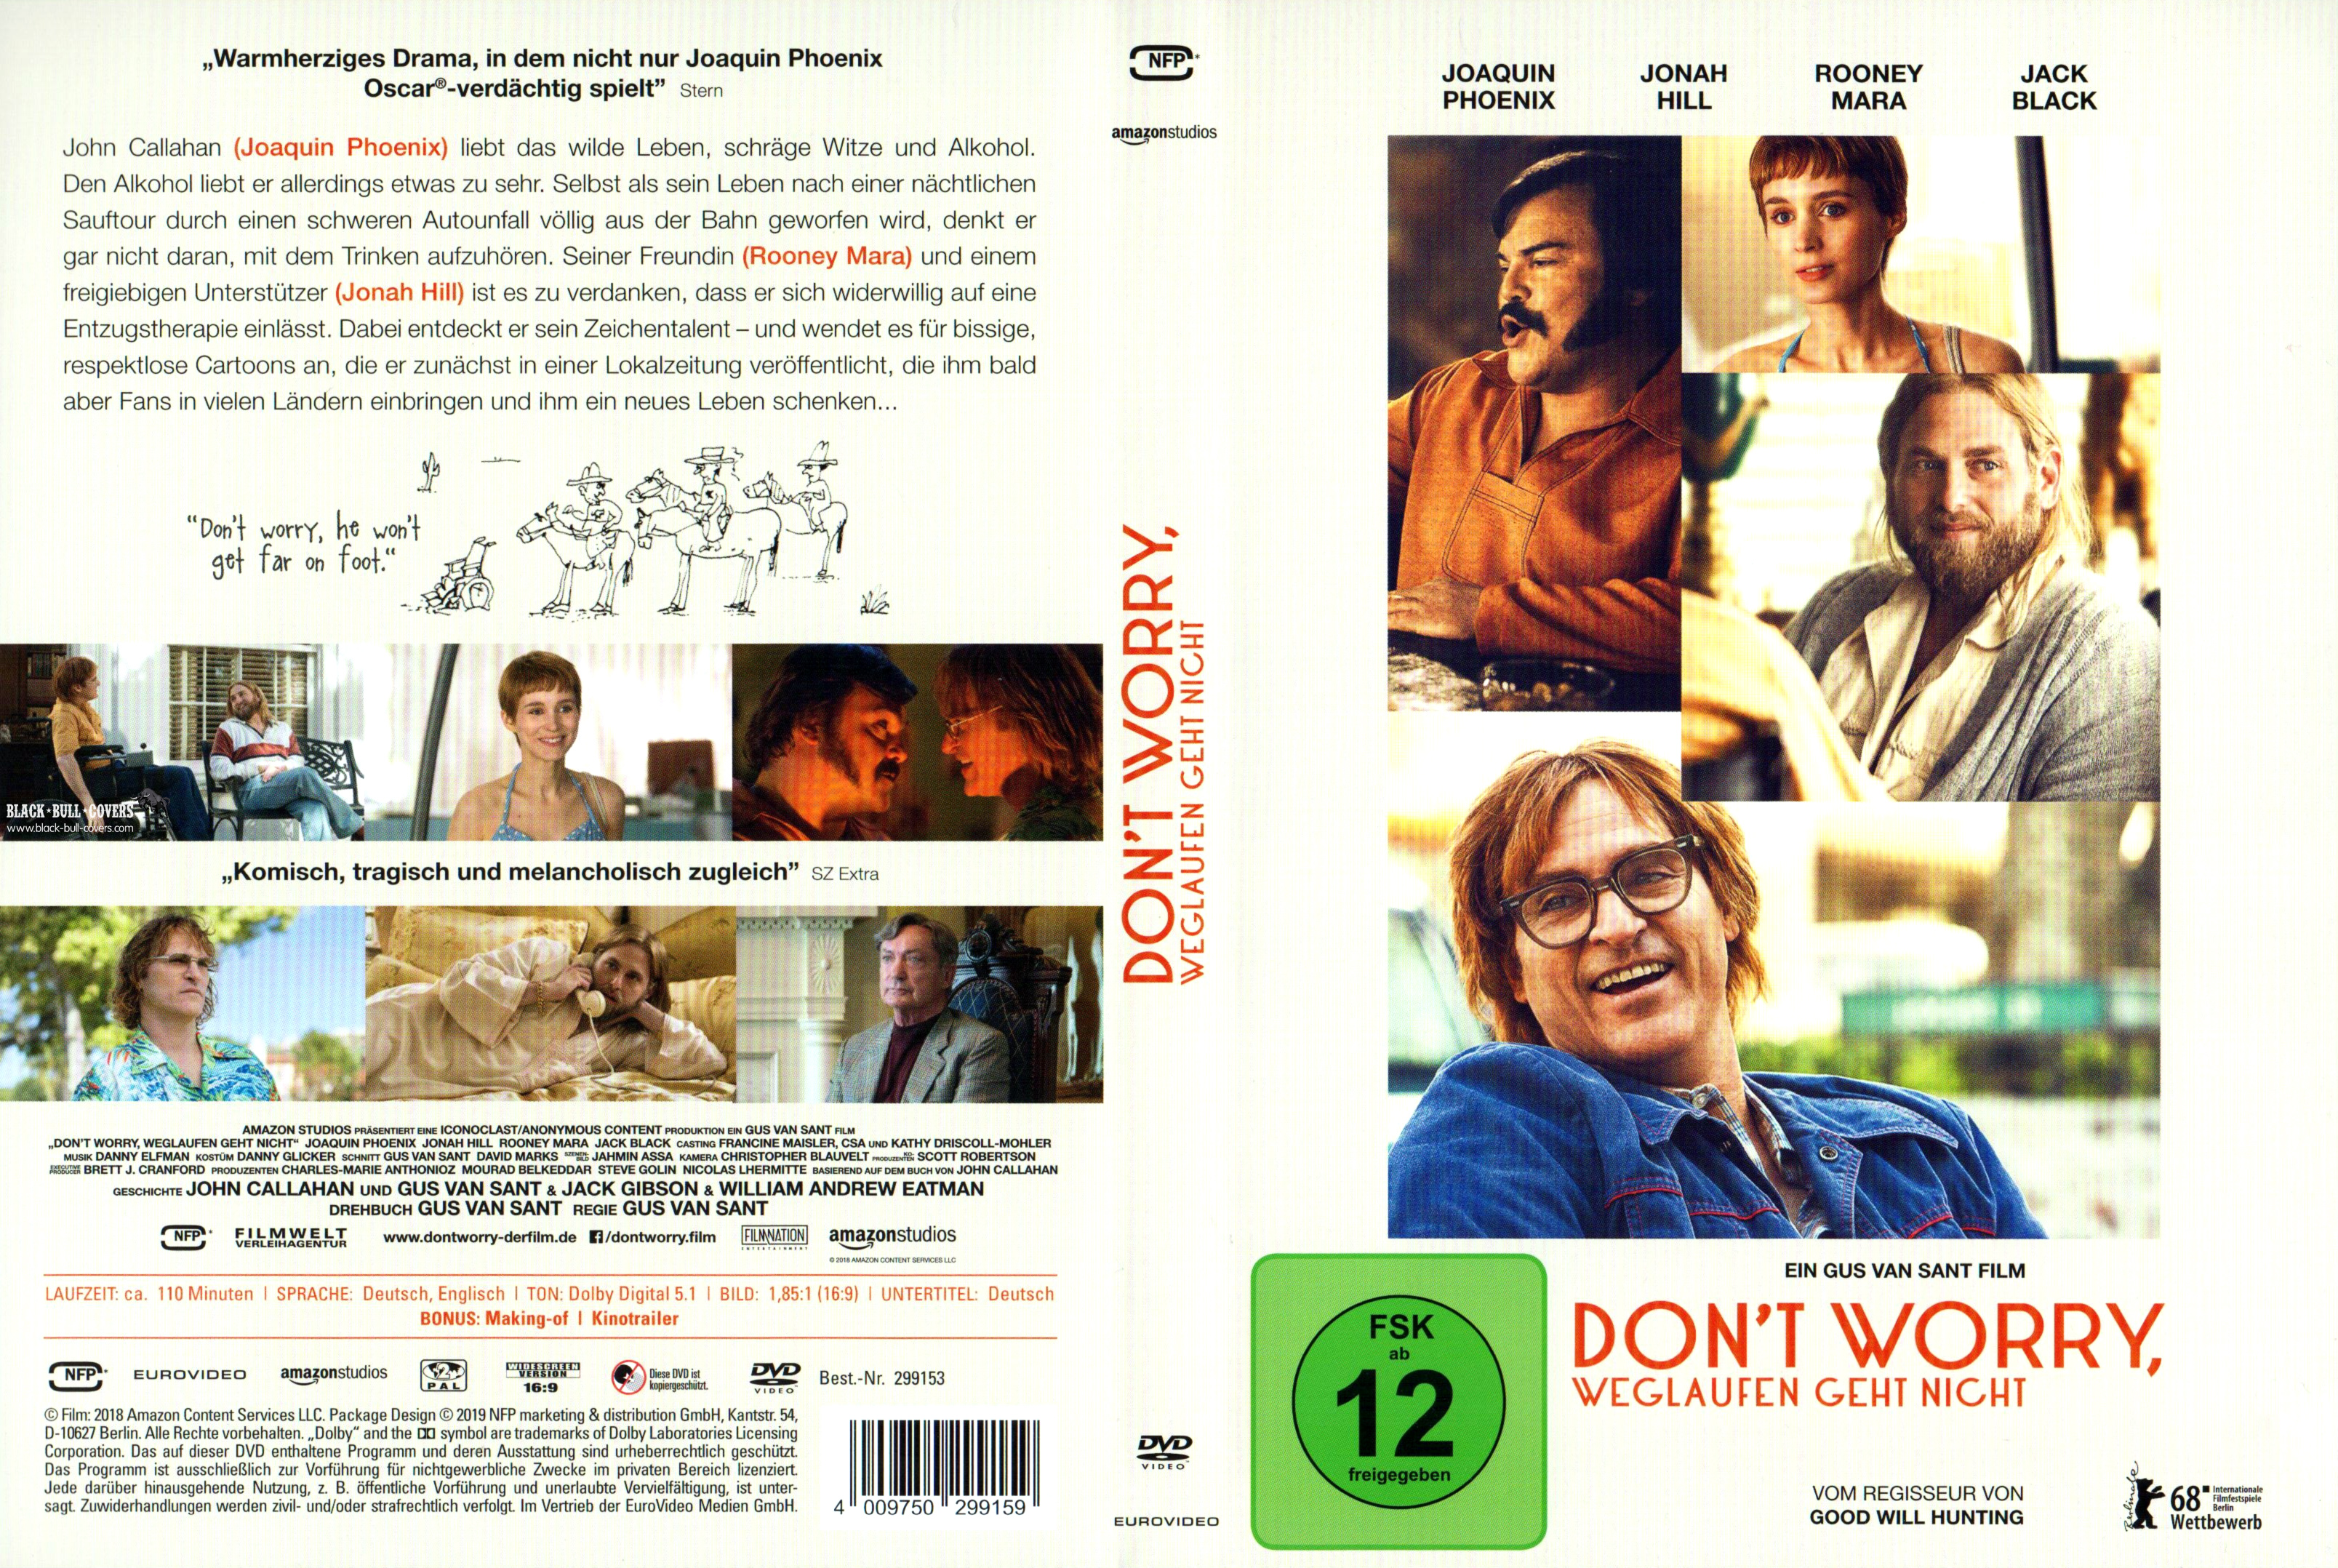 DVD Covers kostenlos - Free DVD Covers - Covers Database